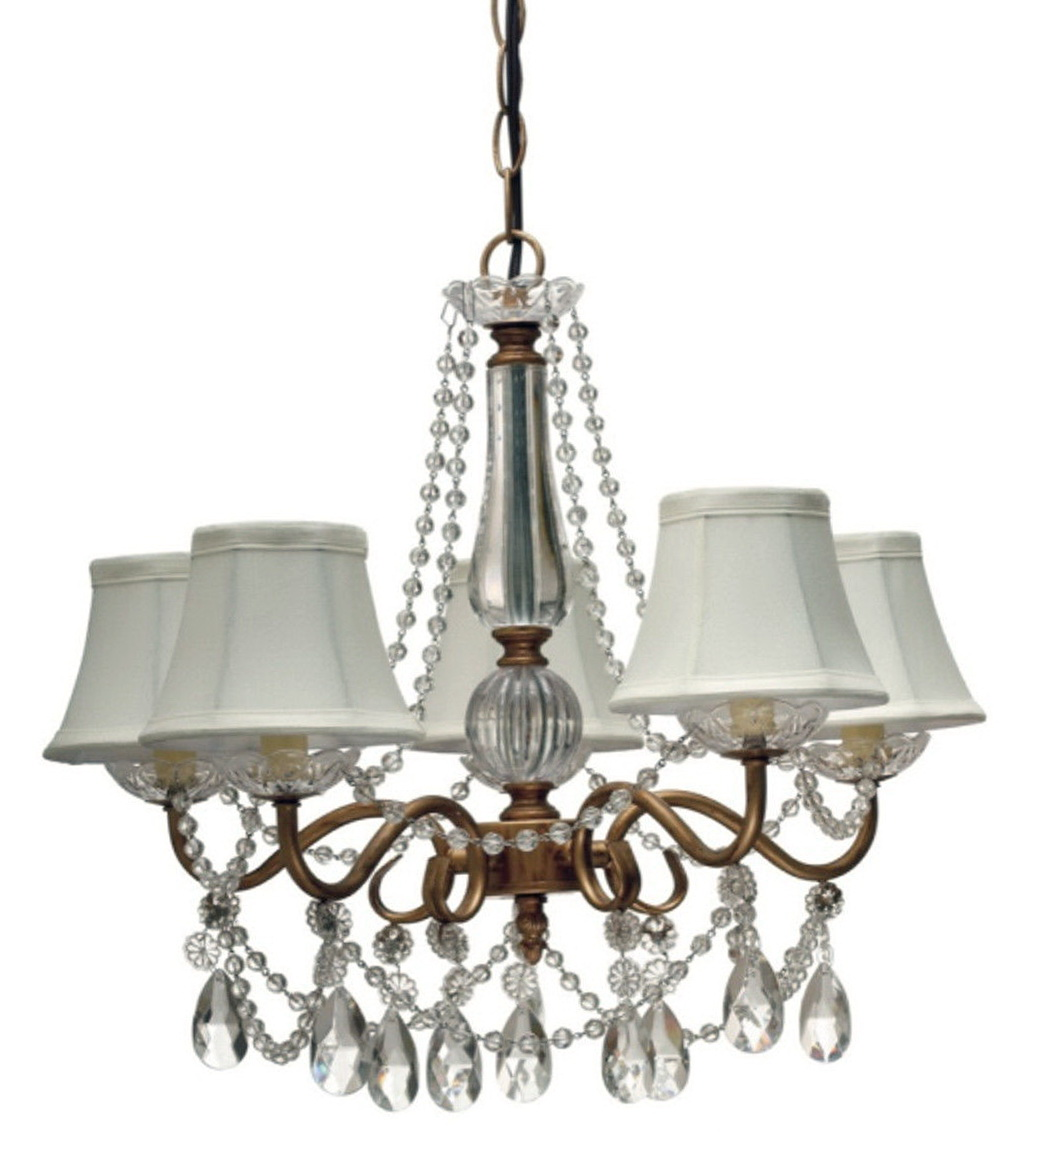 Plug In Mini Chandeliers With Crystals Home Design Ideas